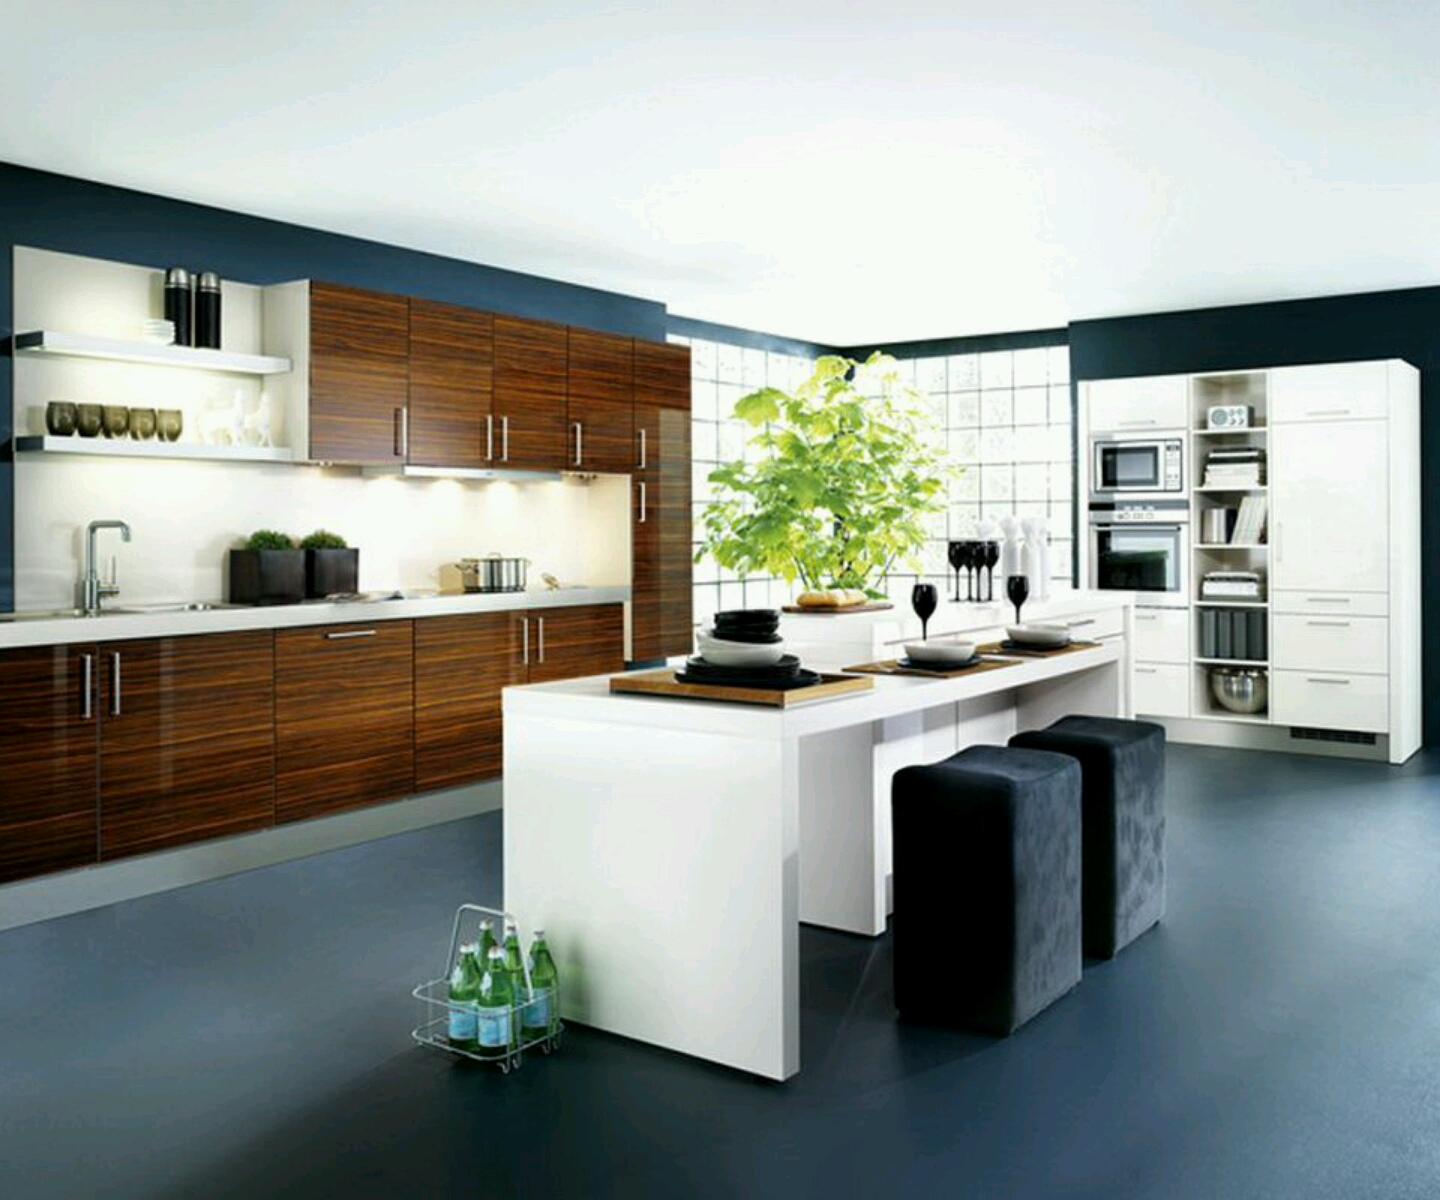 home designs latest kitchen cabinets designs modern homes views comments home kitchen design display